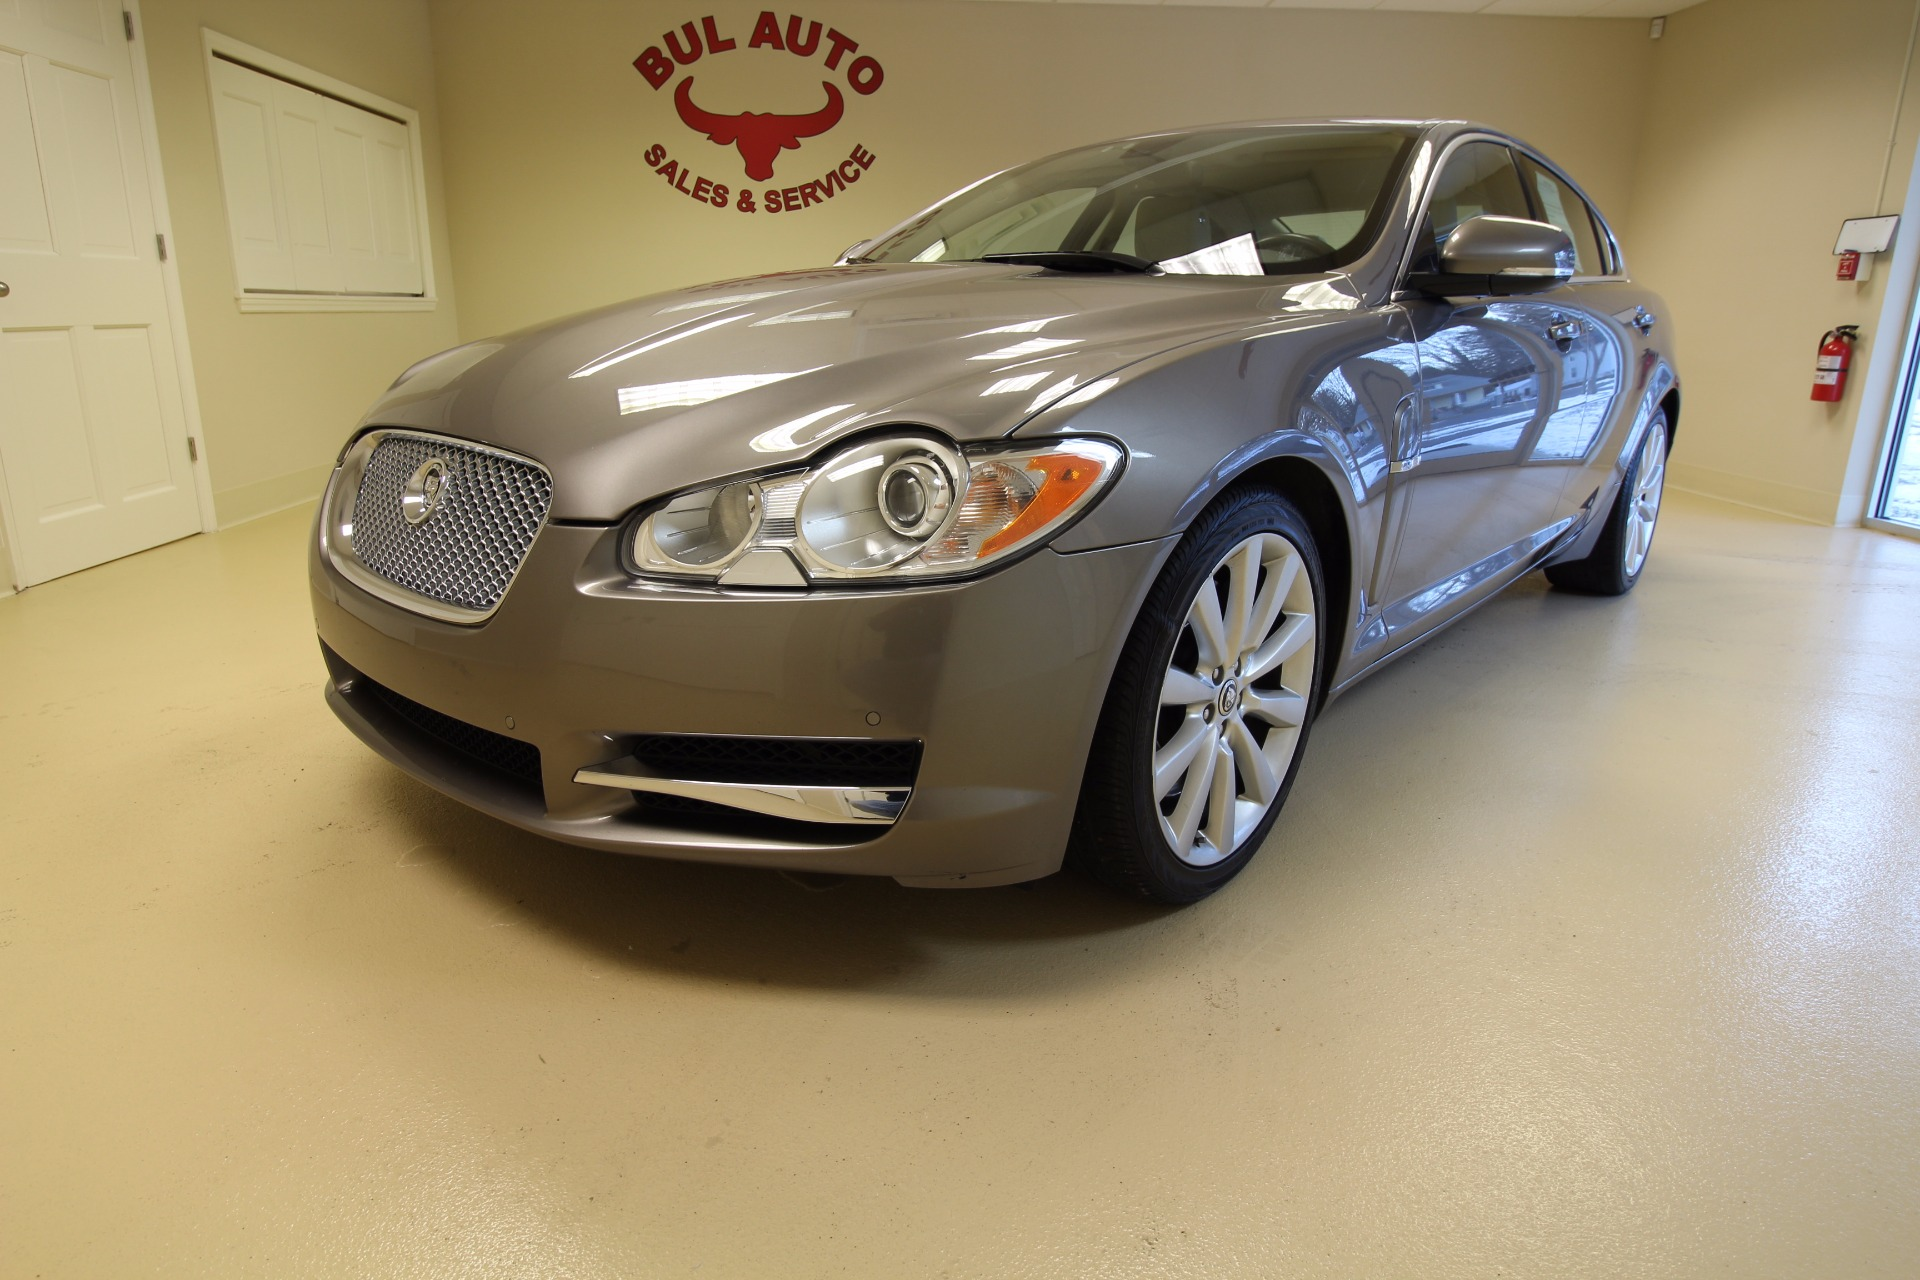 2010 jaguar xf series premium luxury stock 17020 for sale near albany ny ny jaguar dealer. Black Bedroom Furniture Sets. Home Design Ideas